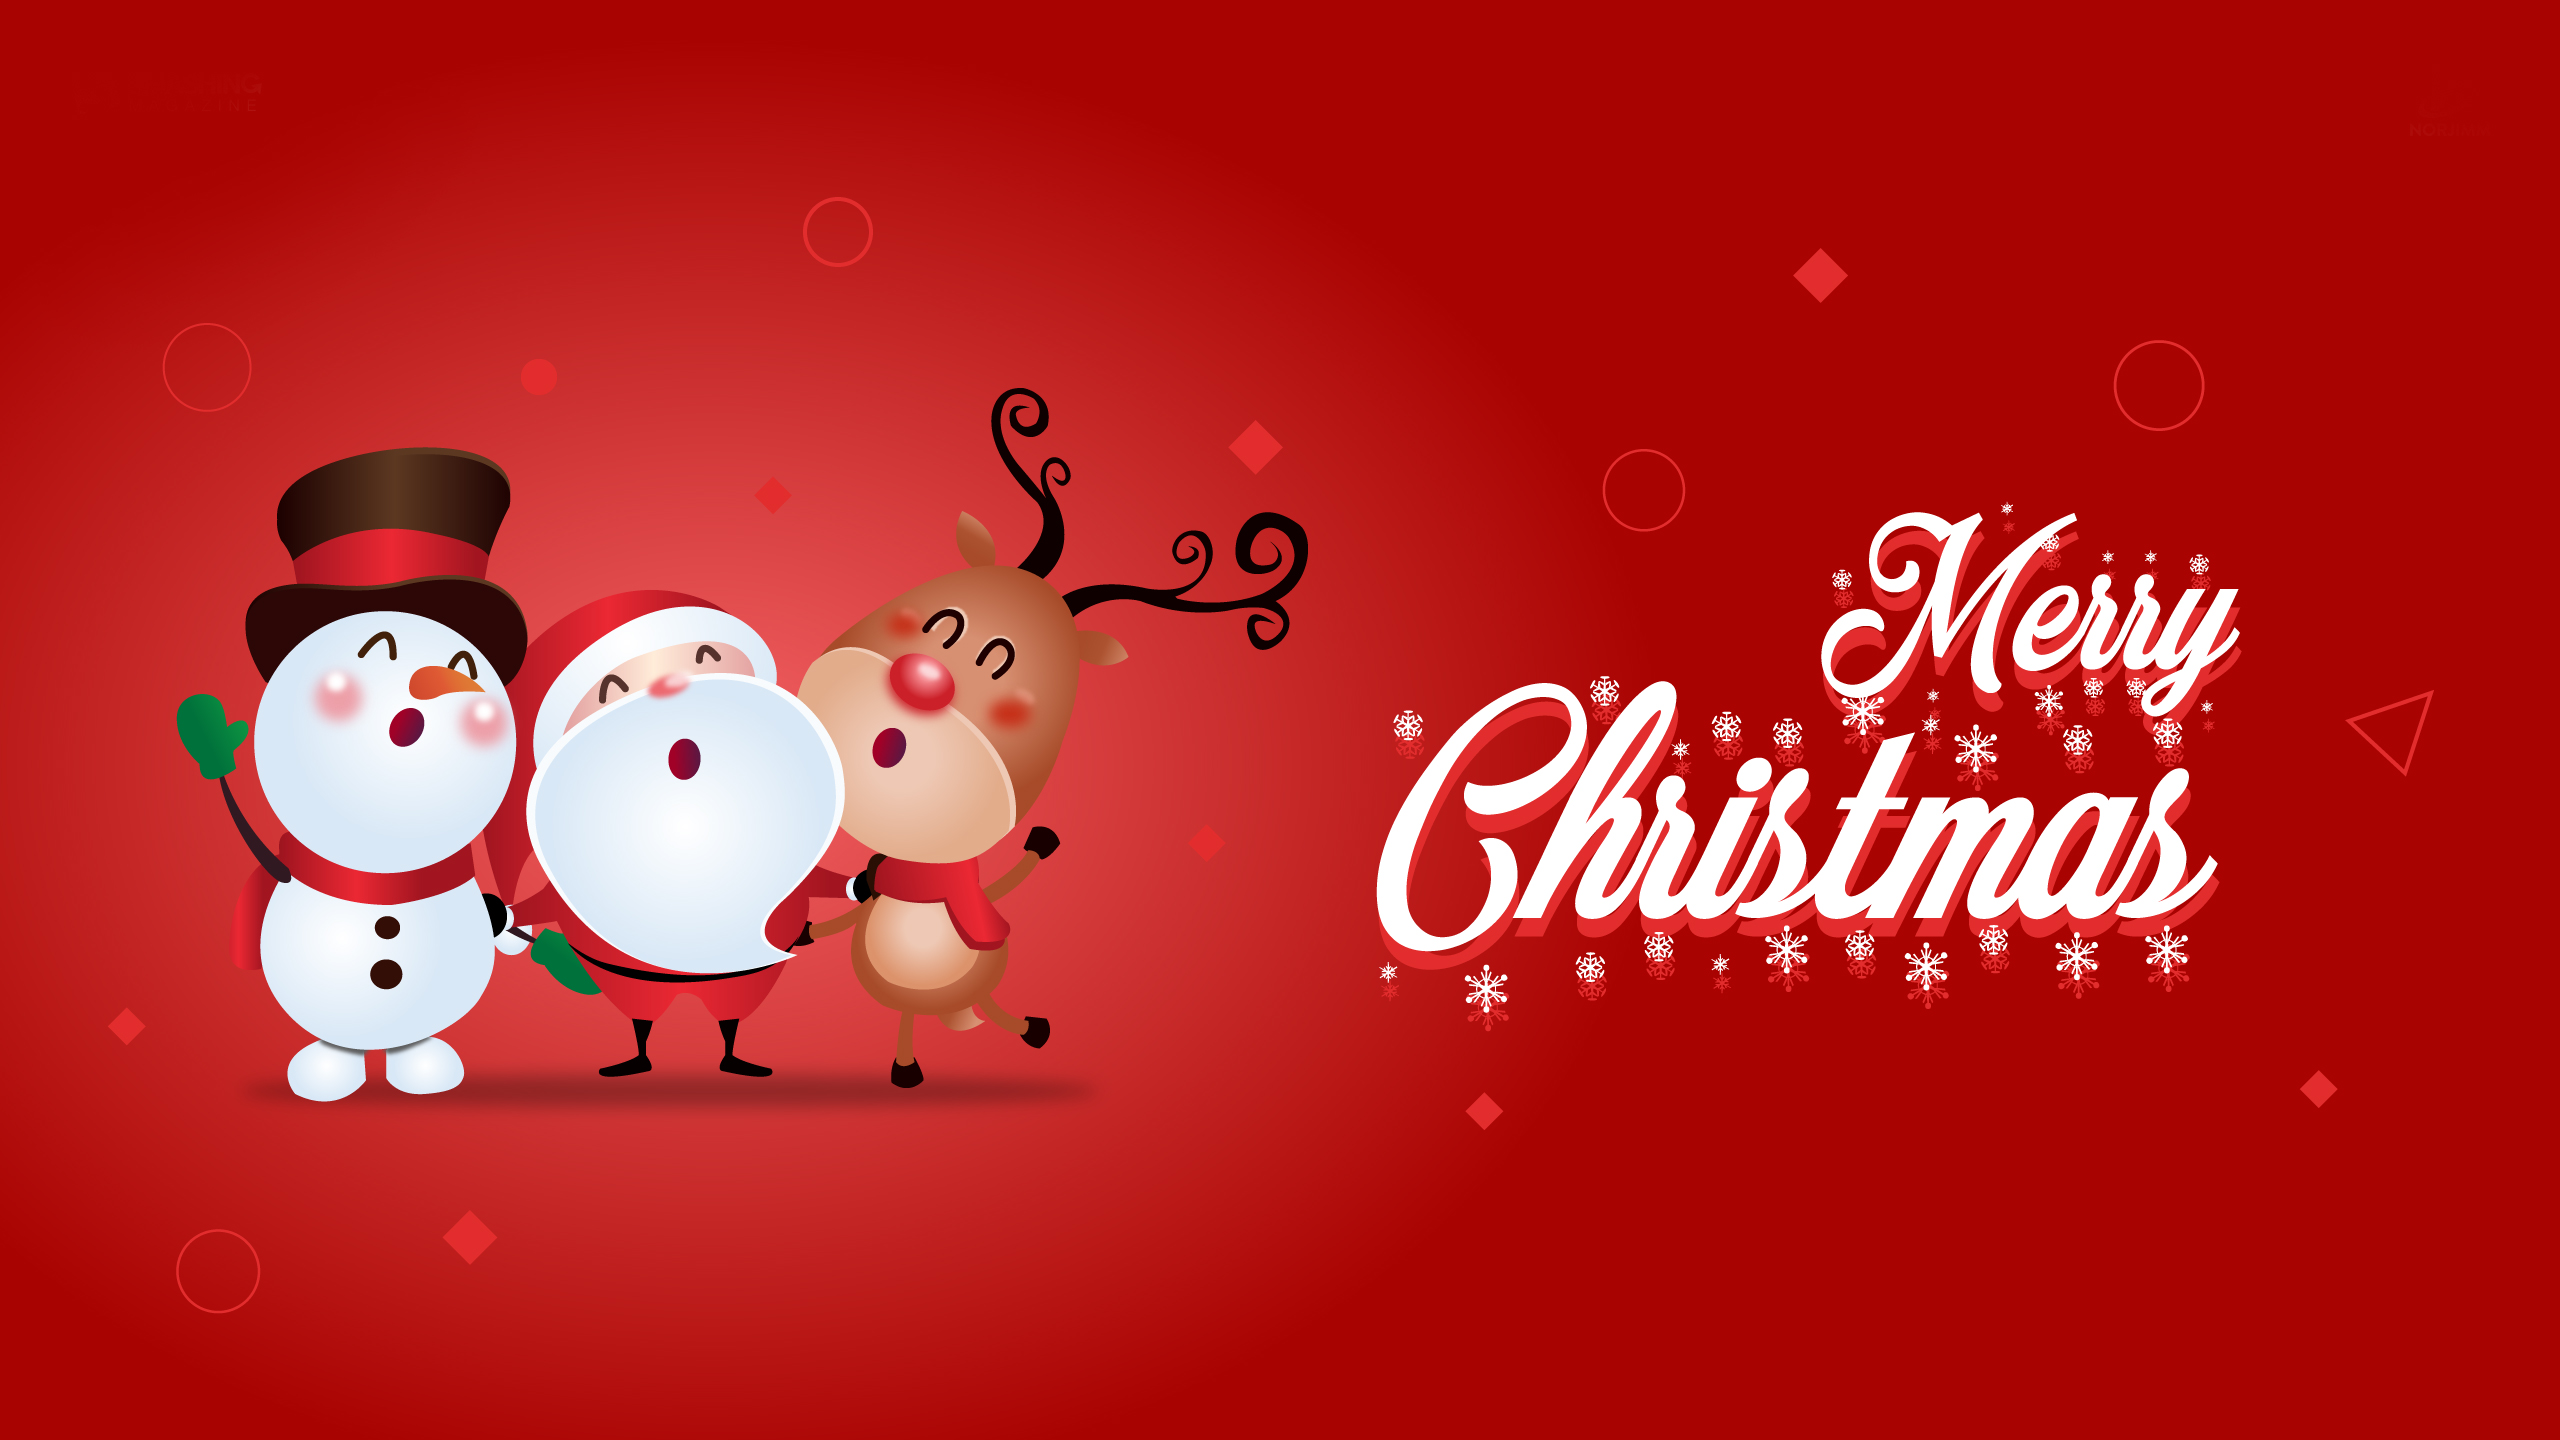 Christmas Hd Wallpaper For Android.Merry Christmas Hdhd Wallpapers Hd Wallpapers